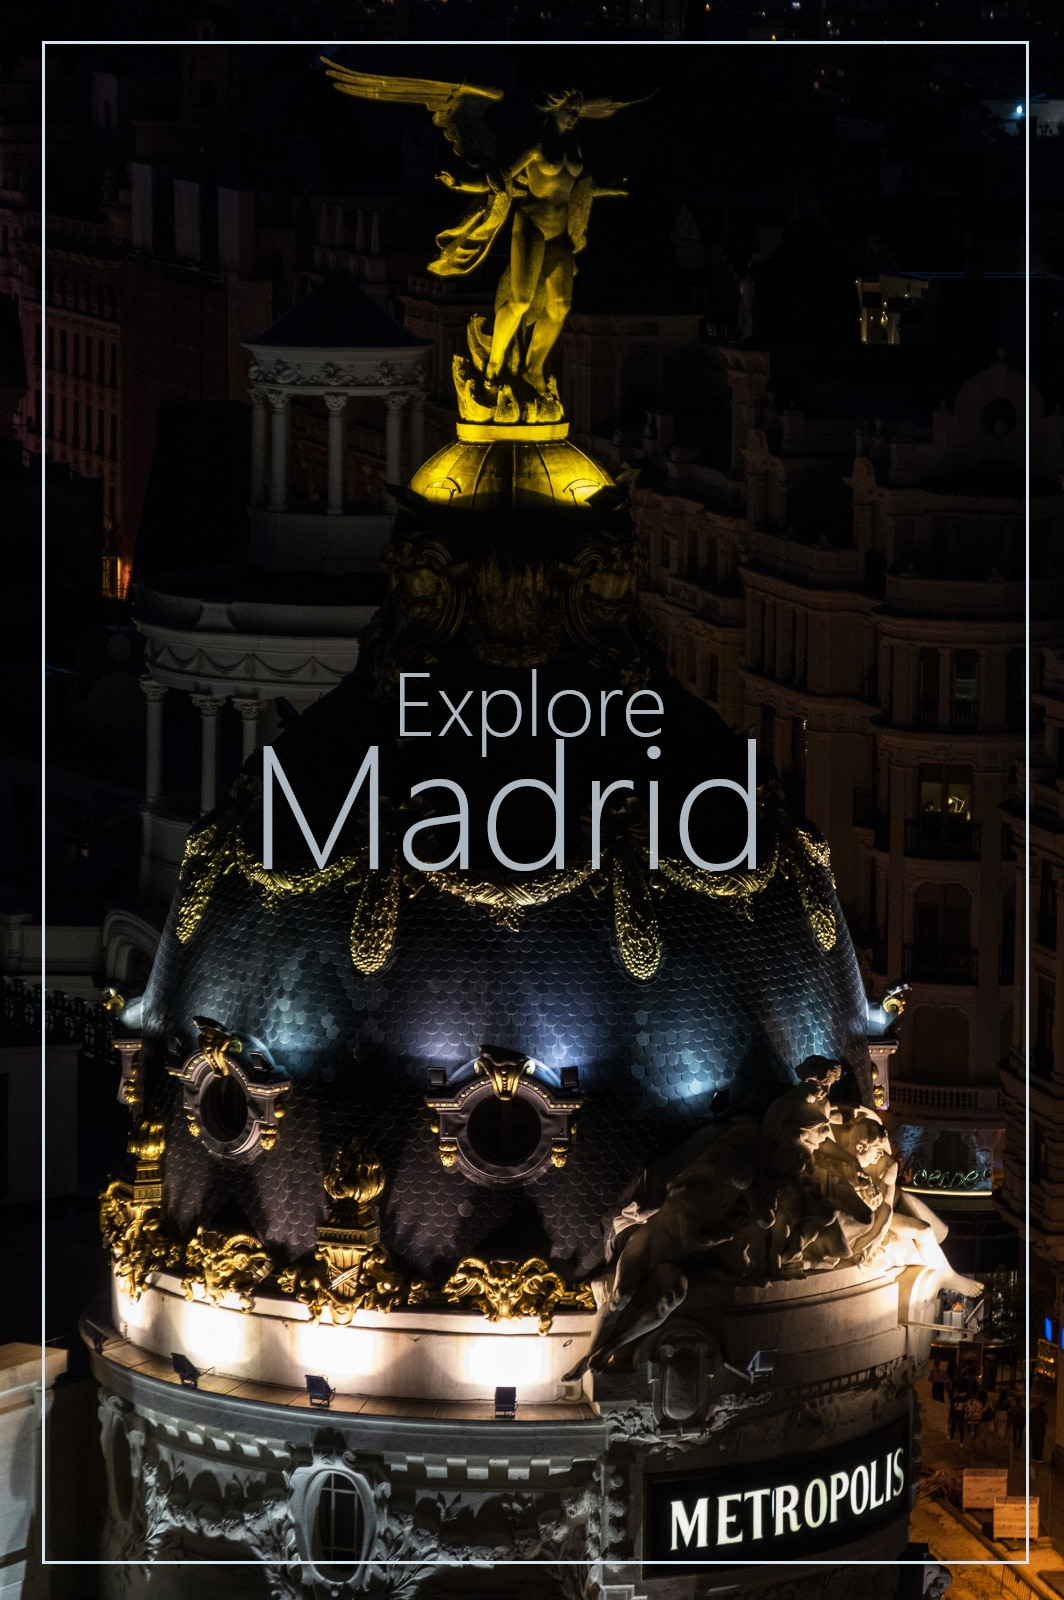 Beautiful and perhaps a bit underrated, Madrid is definitely a must-see European city. Rich in character, with beautiful architecture and turbulent history yet very approachable and hospitable.